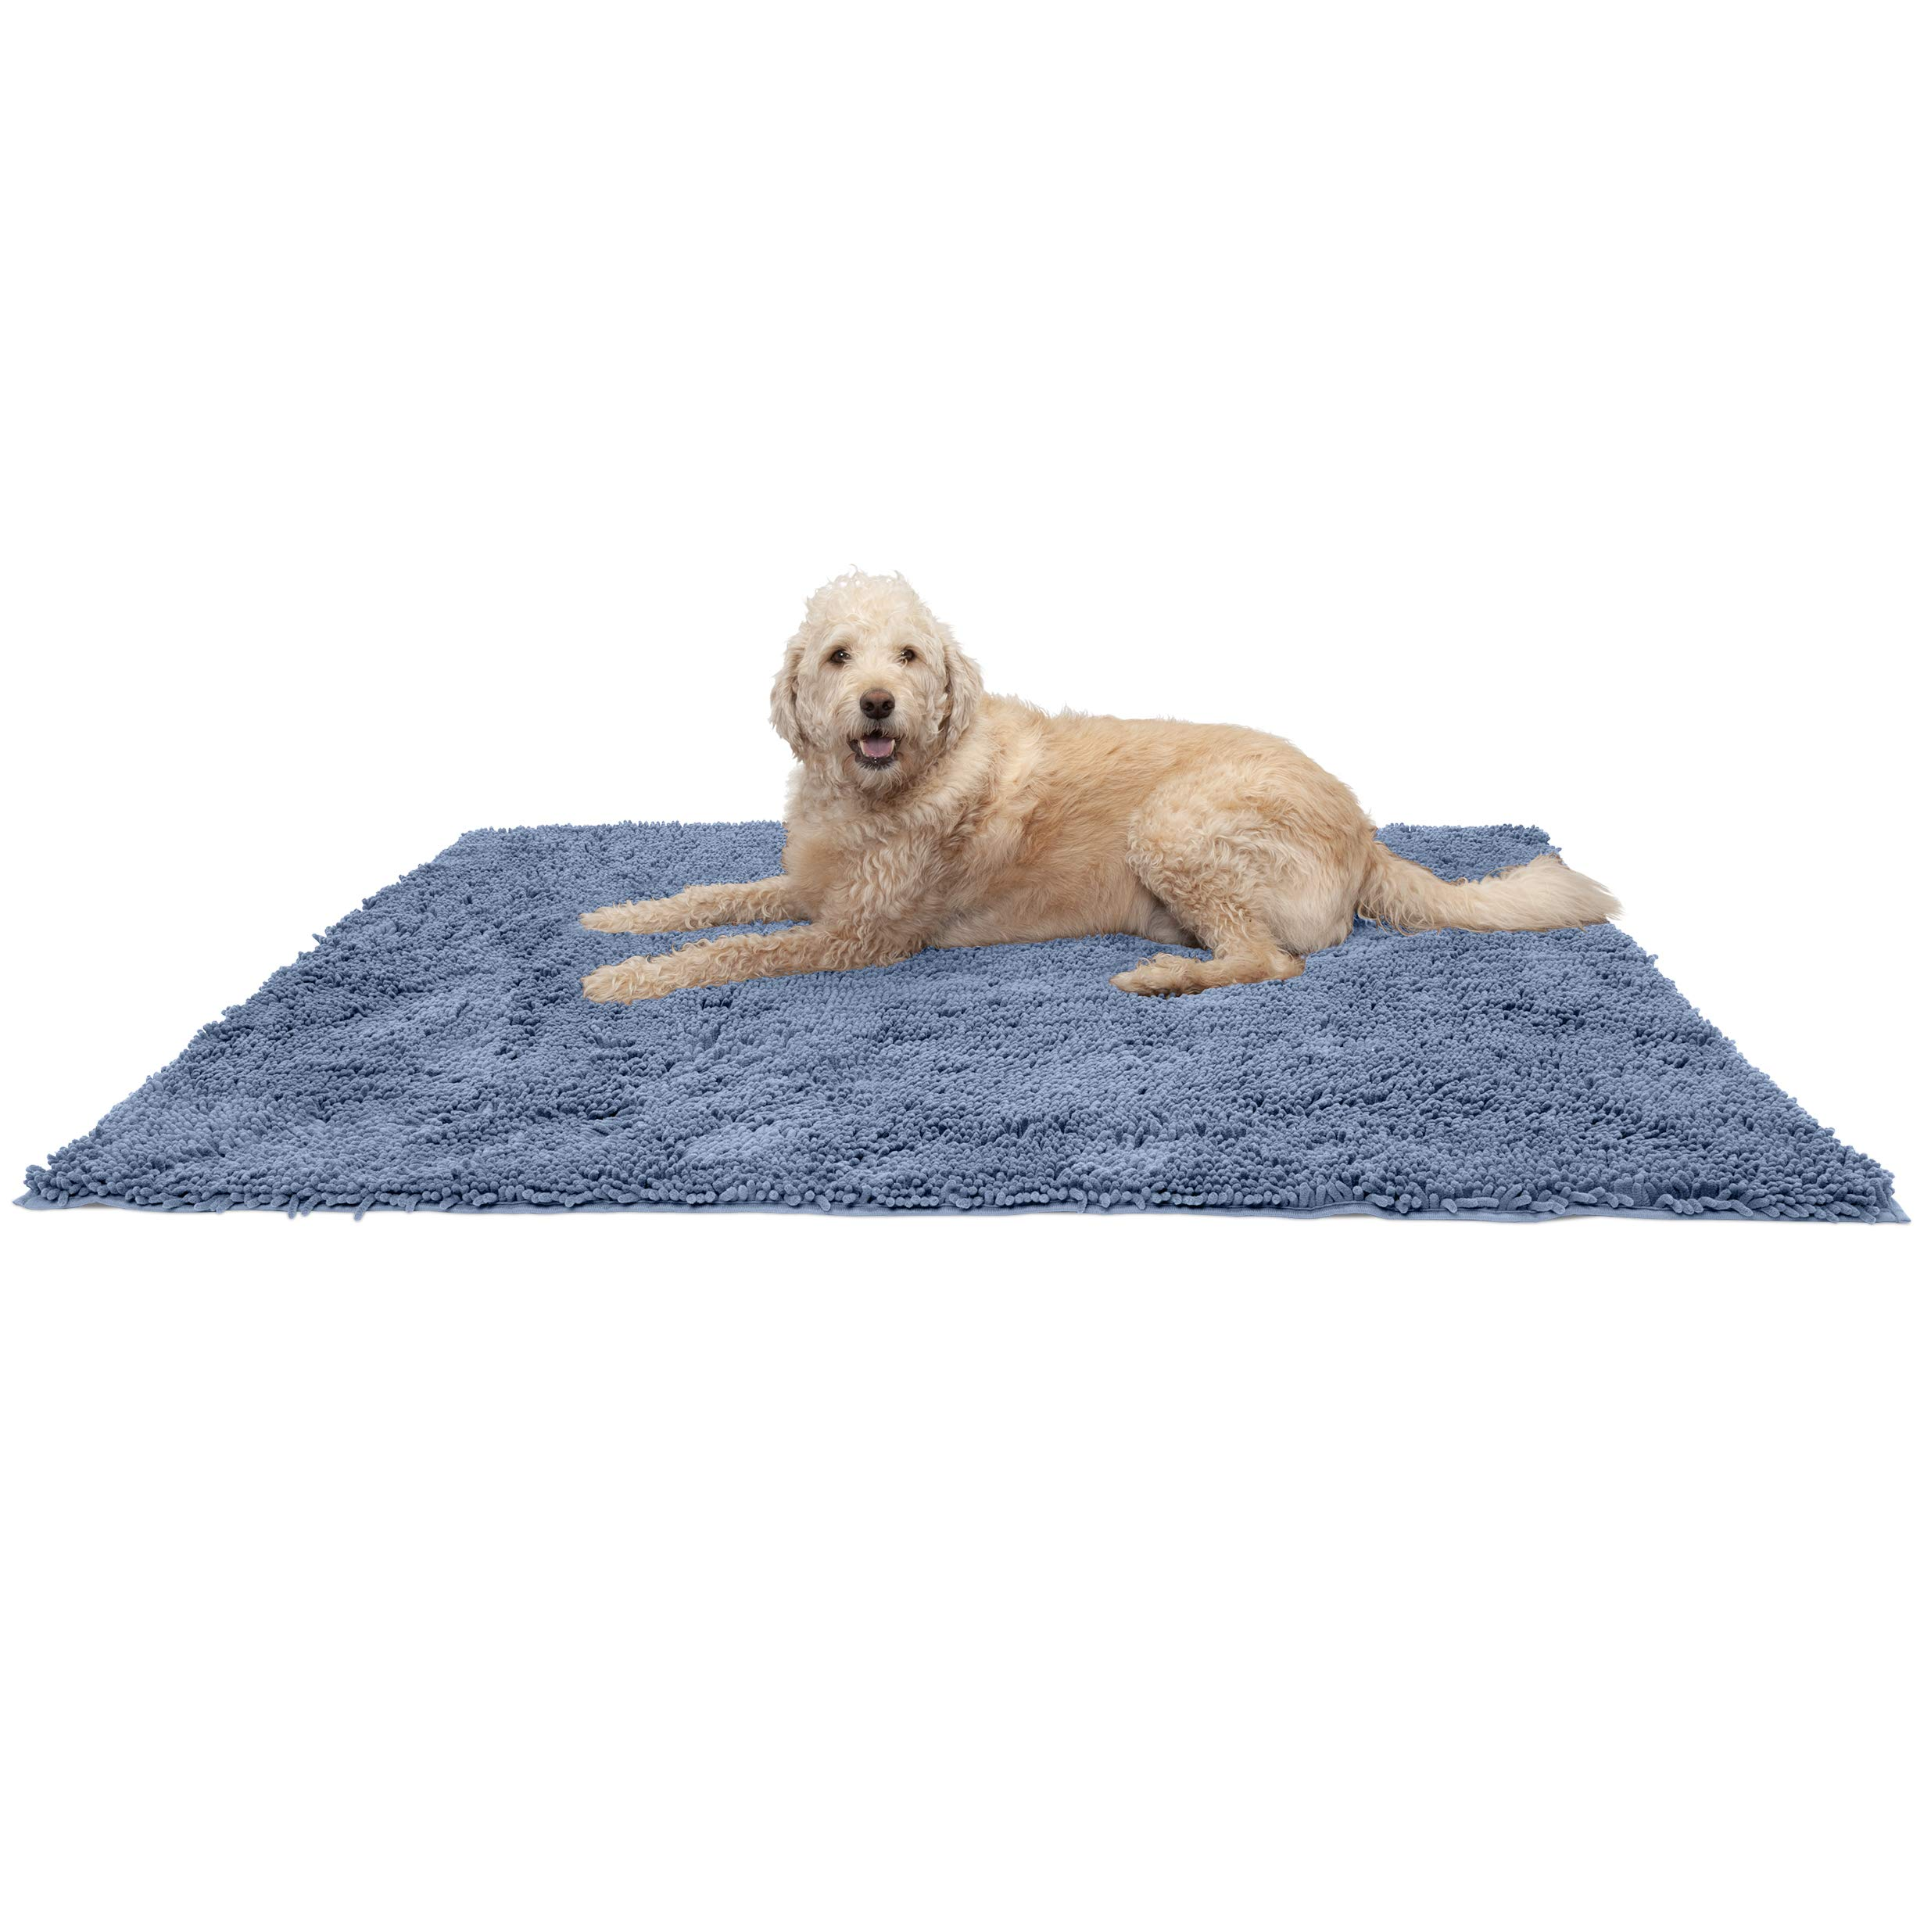 Furhaven Pet Dog Mat | Muddy Paws Absorbent Chenille Bath Towel & Shammy Rug for Dogs & Cats, Blue, Jumbo Plus